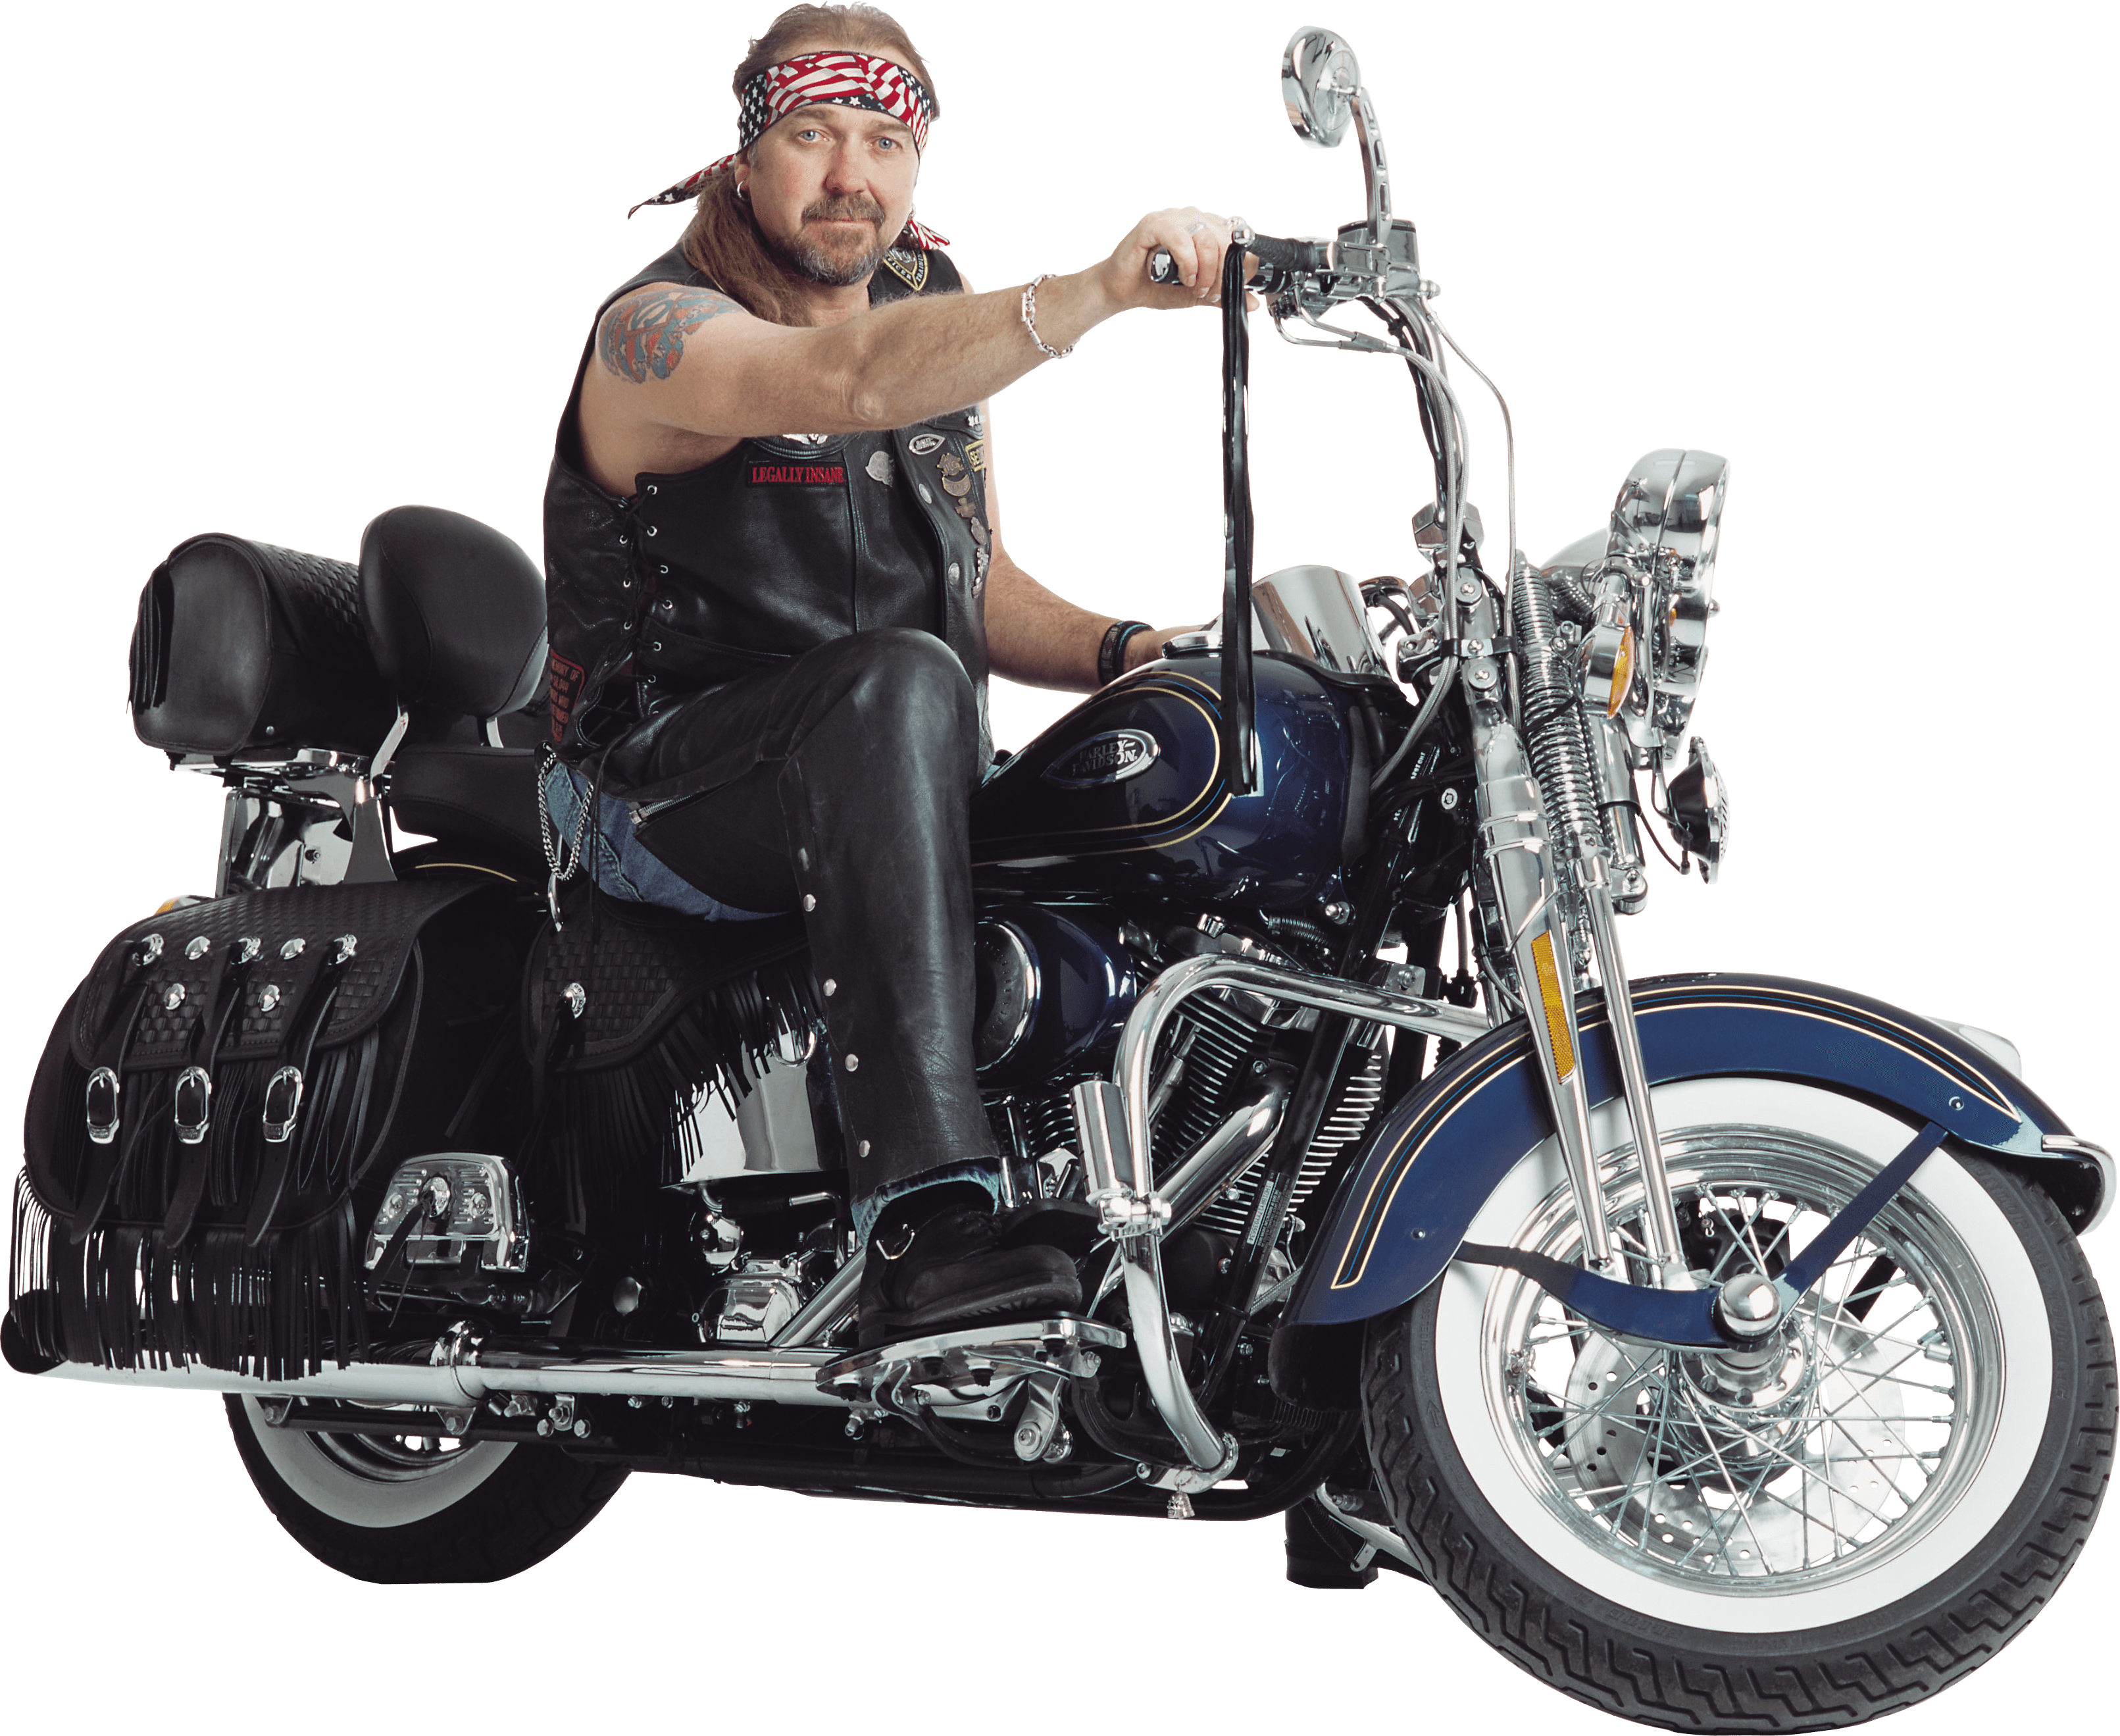 Motorbiker On Motorcycle Png Image Man On Motorcycle Png Image